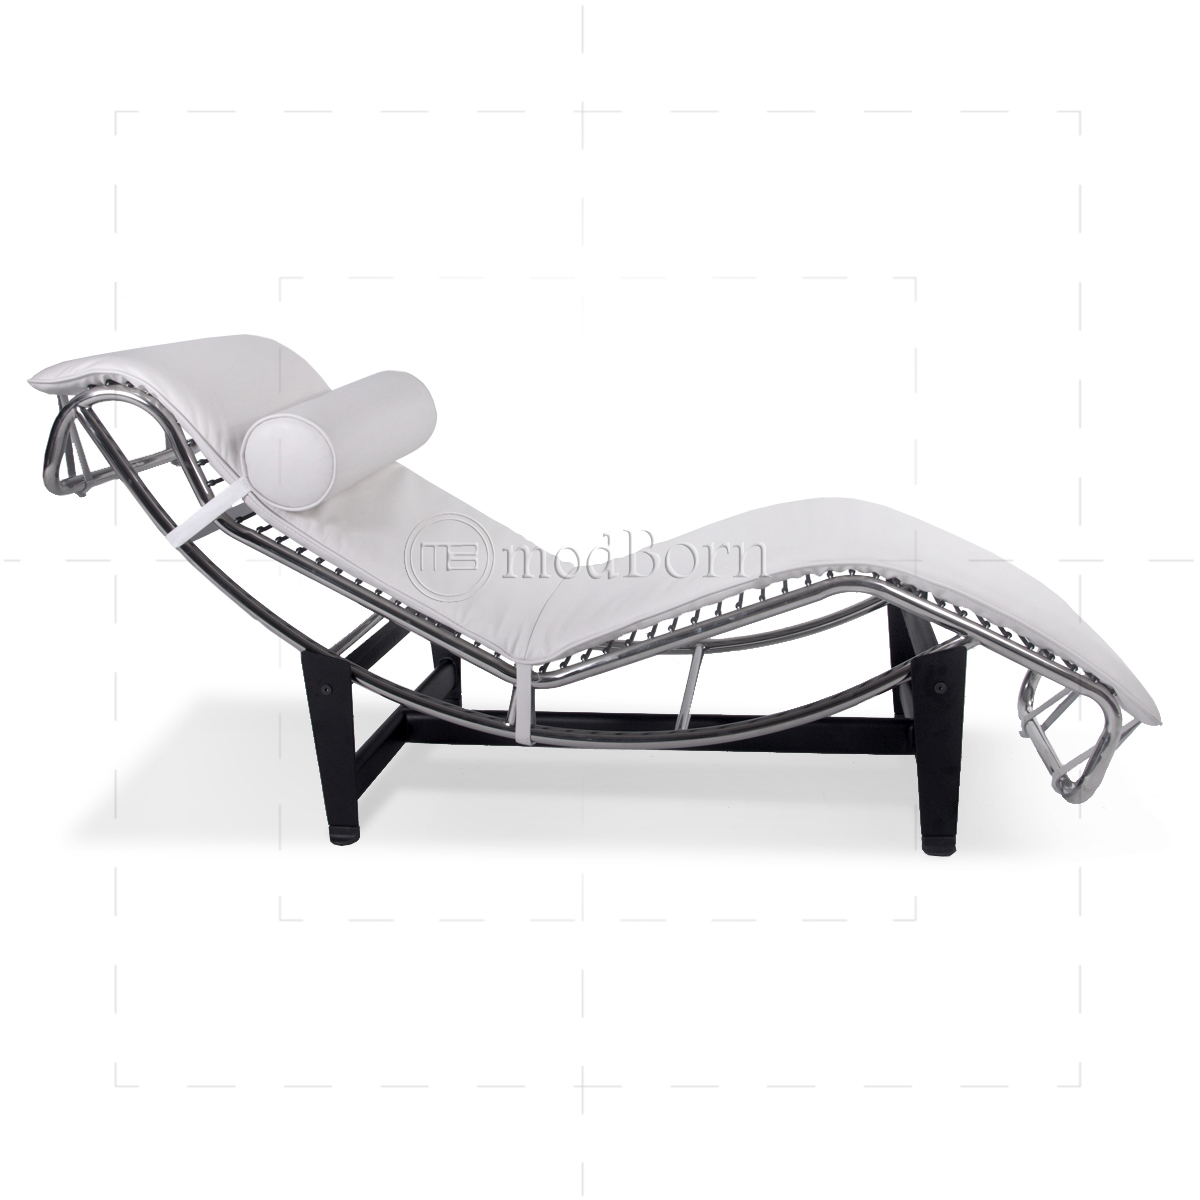 Modborn furnitures product gallery for Chaise lounge corbusier